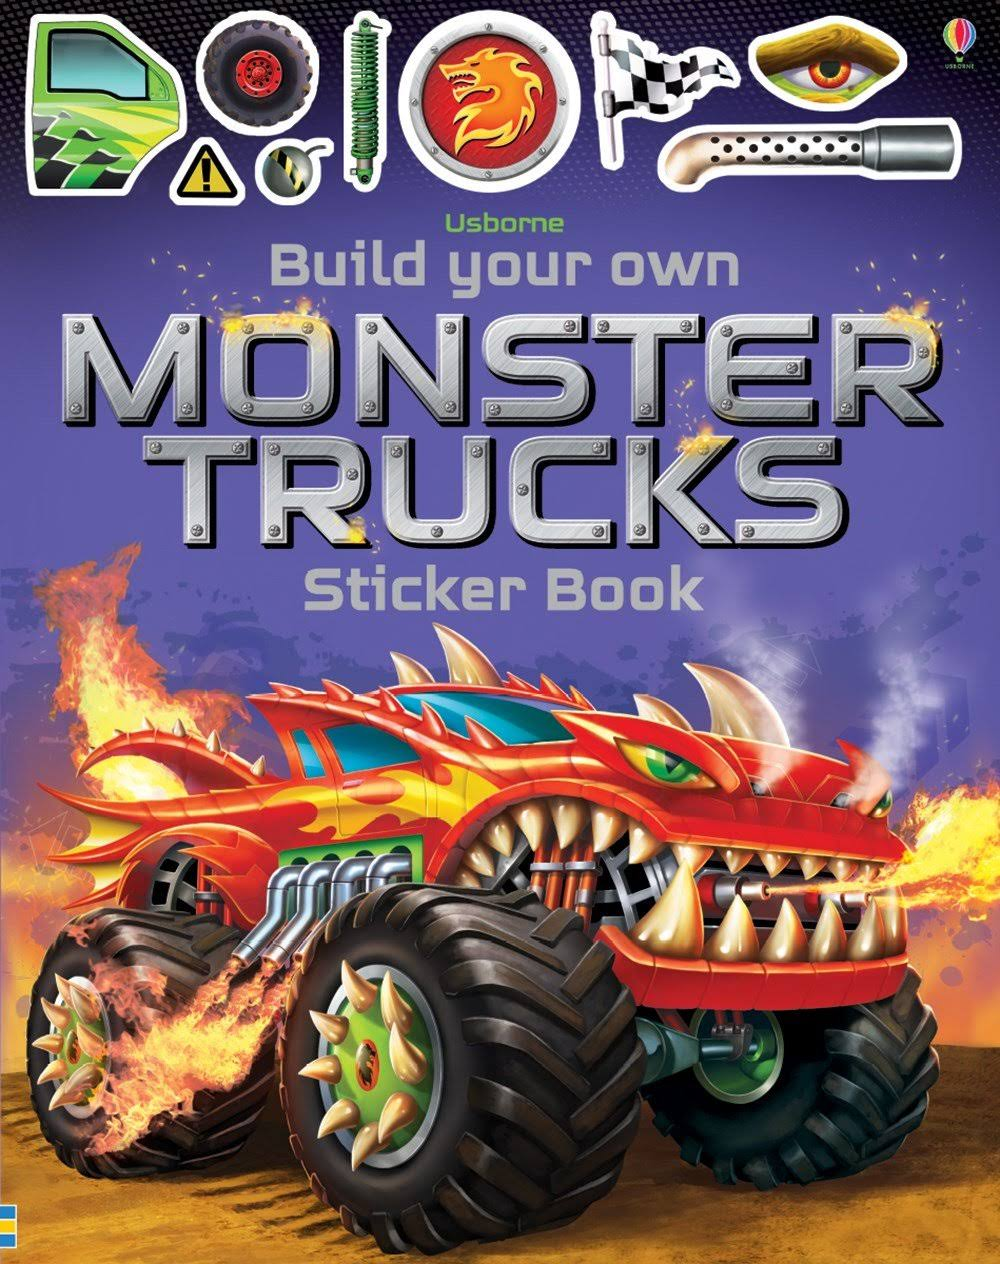 Build Your Own Monster Trucks [Book]